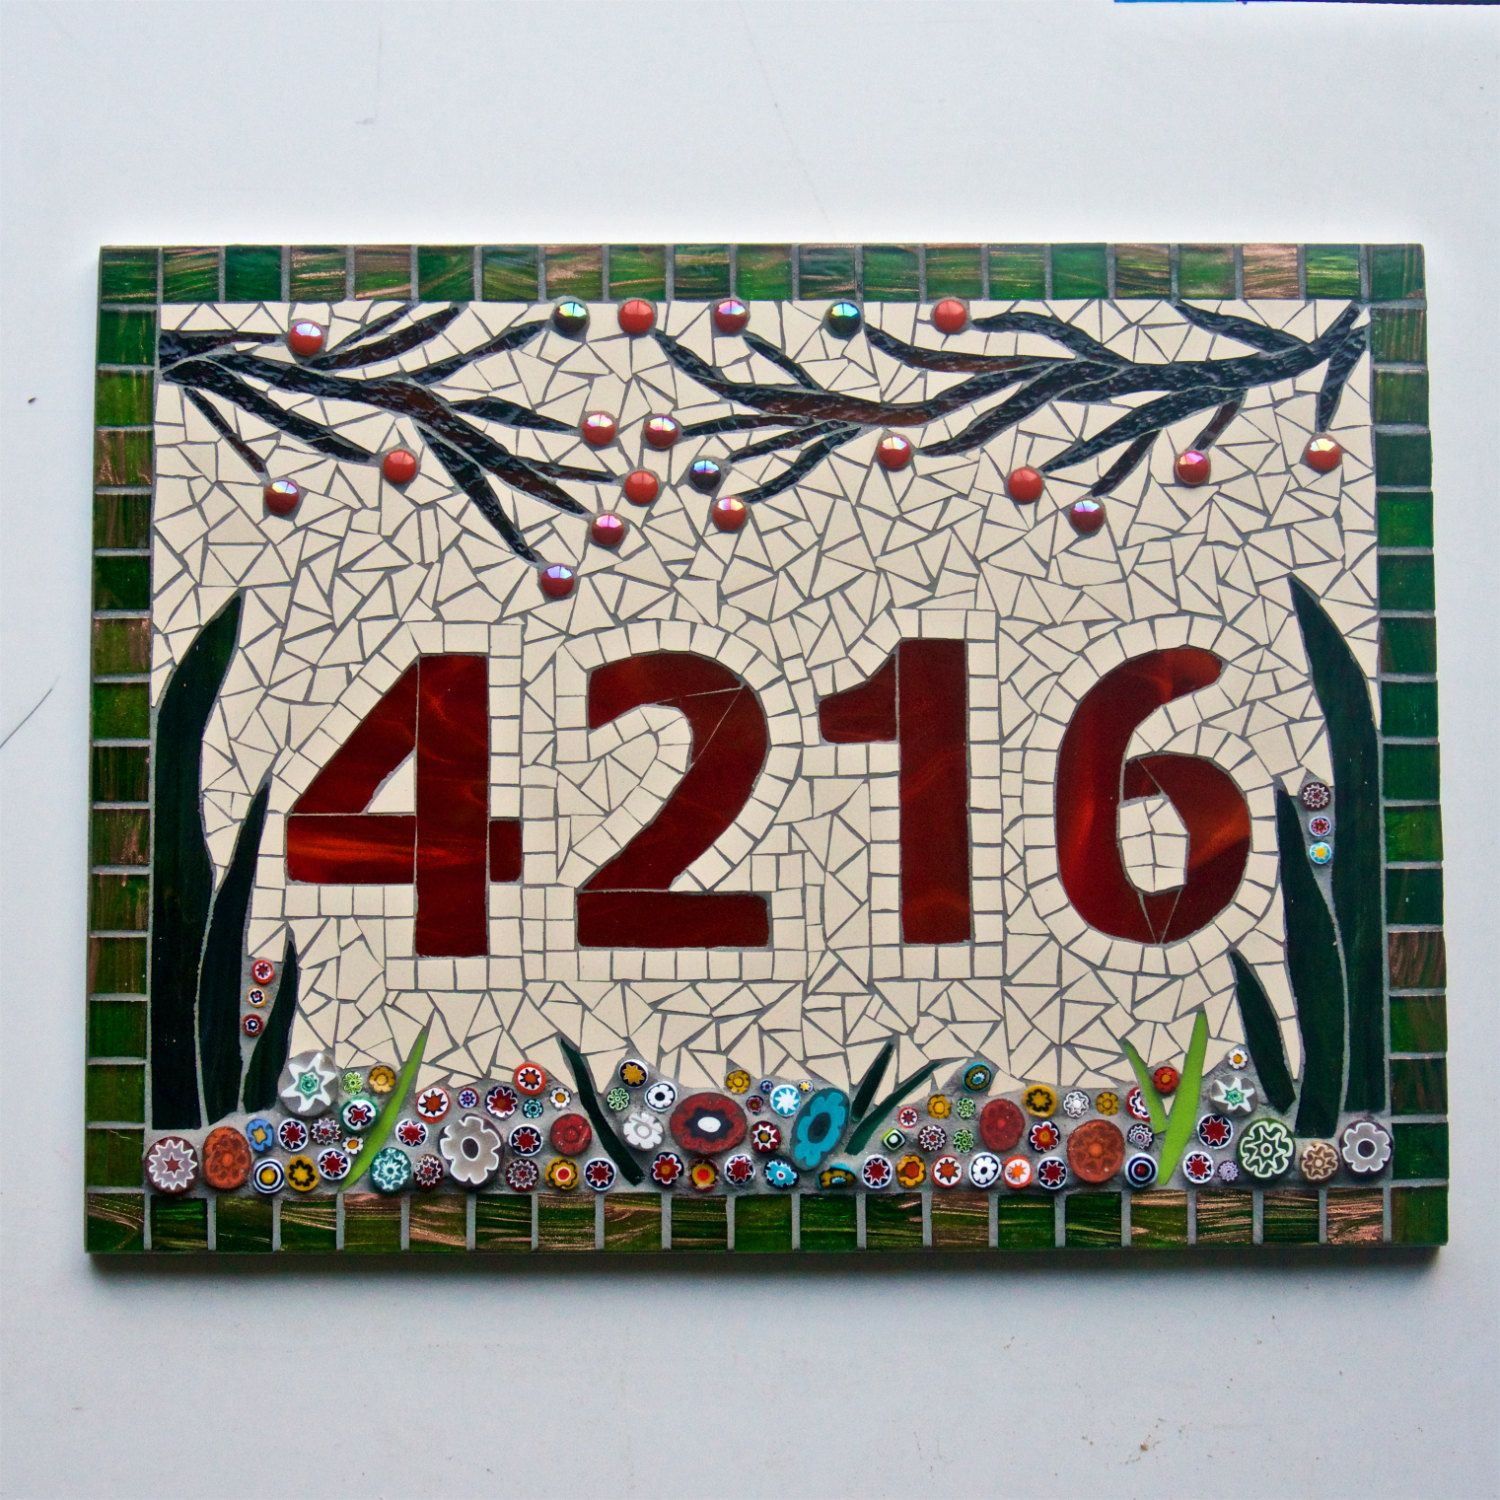 Large mosaic house number sign plaque address number plate large mosaic house number sign plaque address number plate custom bespokehandmade uk 4 digit glass ceramic floral garden design dailygadgetfo Gallery